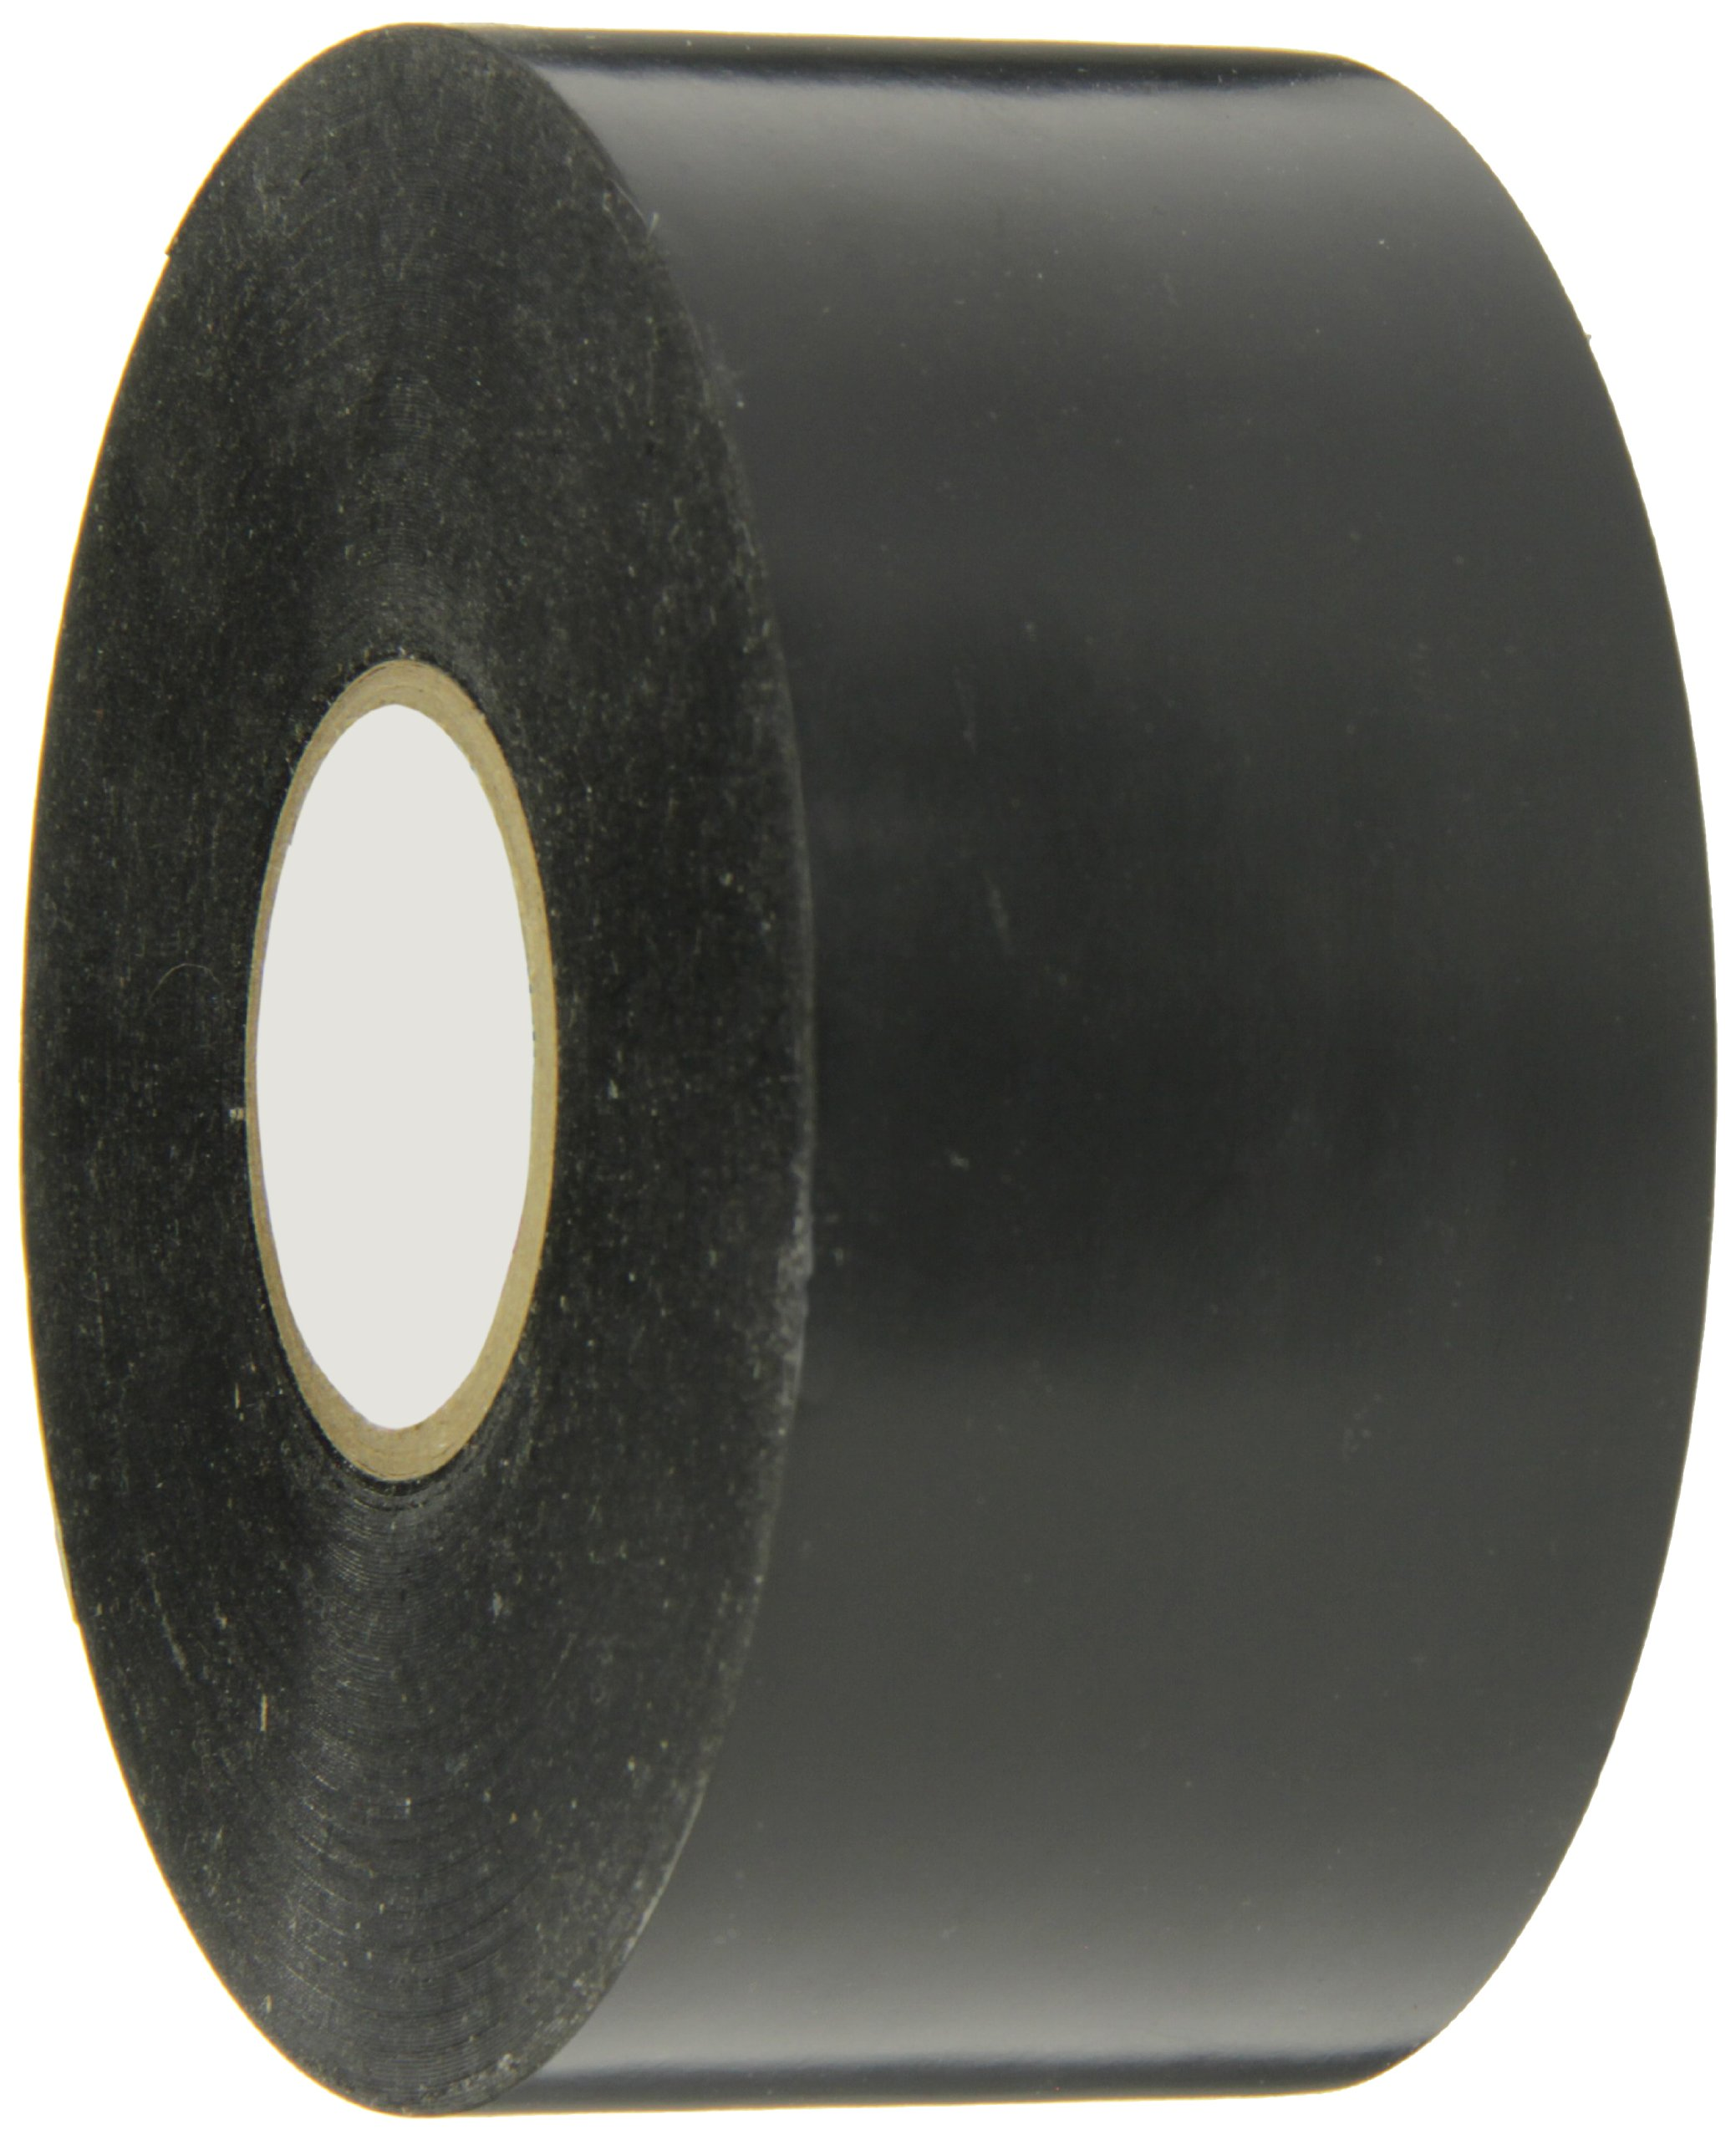 3M(TM) Scotchrap(TM) All-Weather Corrosion Protection Tape 50, 2 in x 100 ft